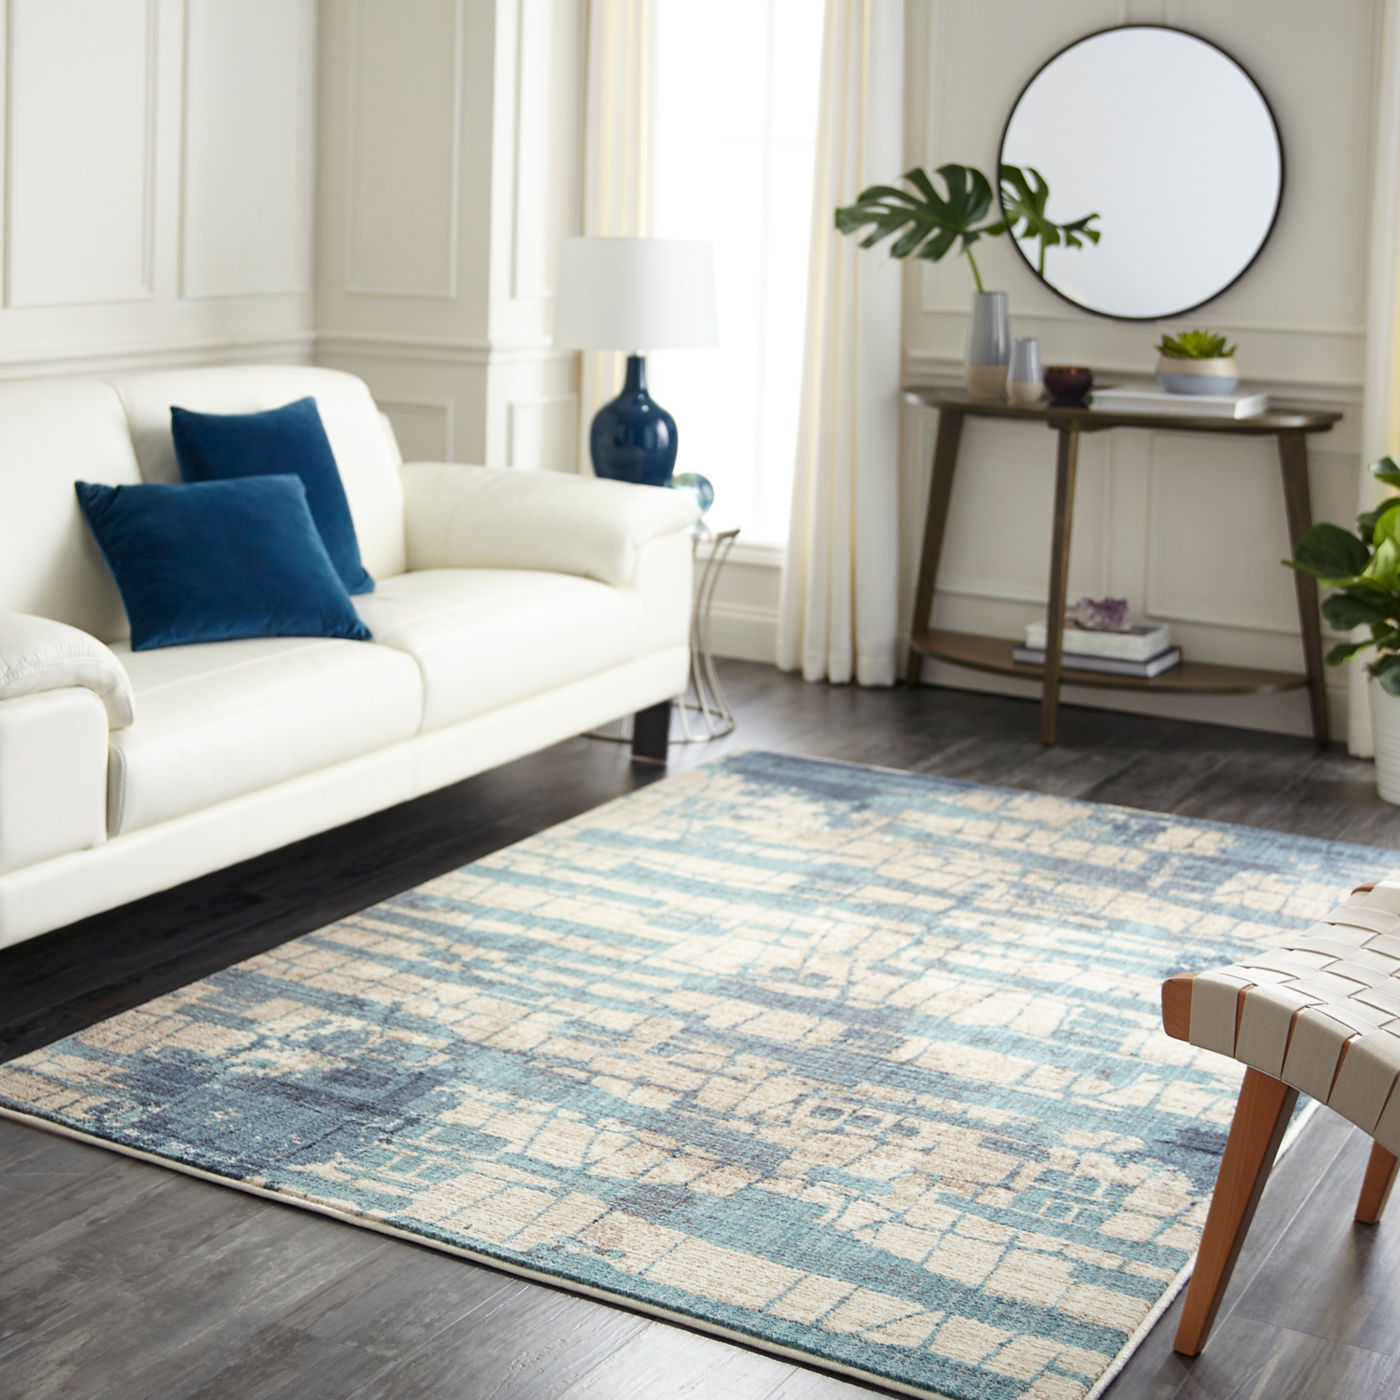 Karastan rug | Carpet Your World